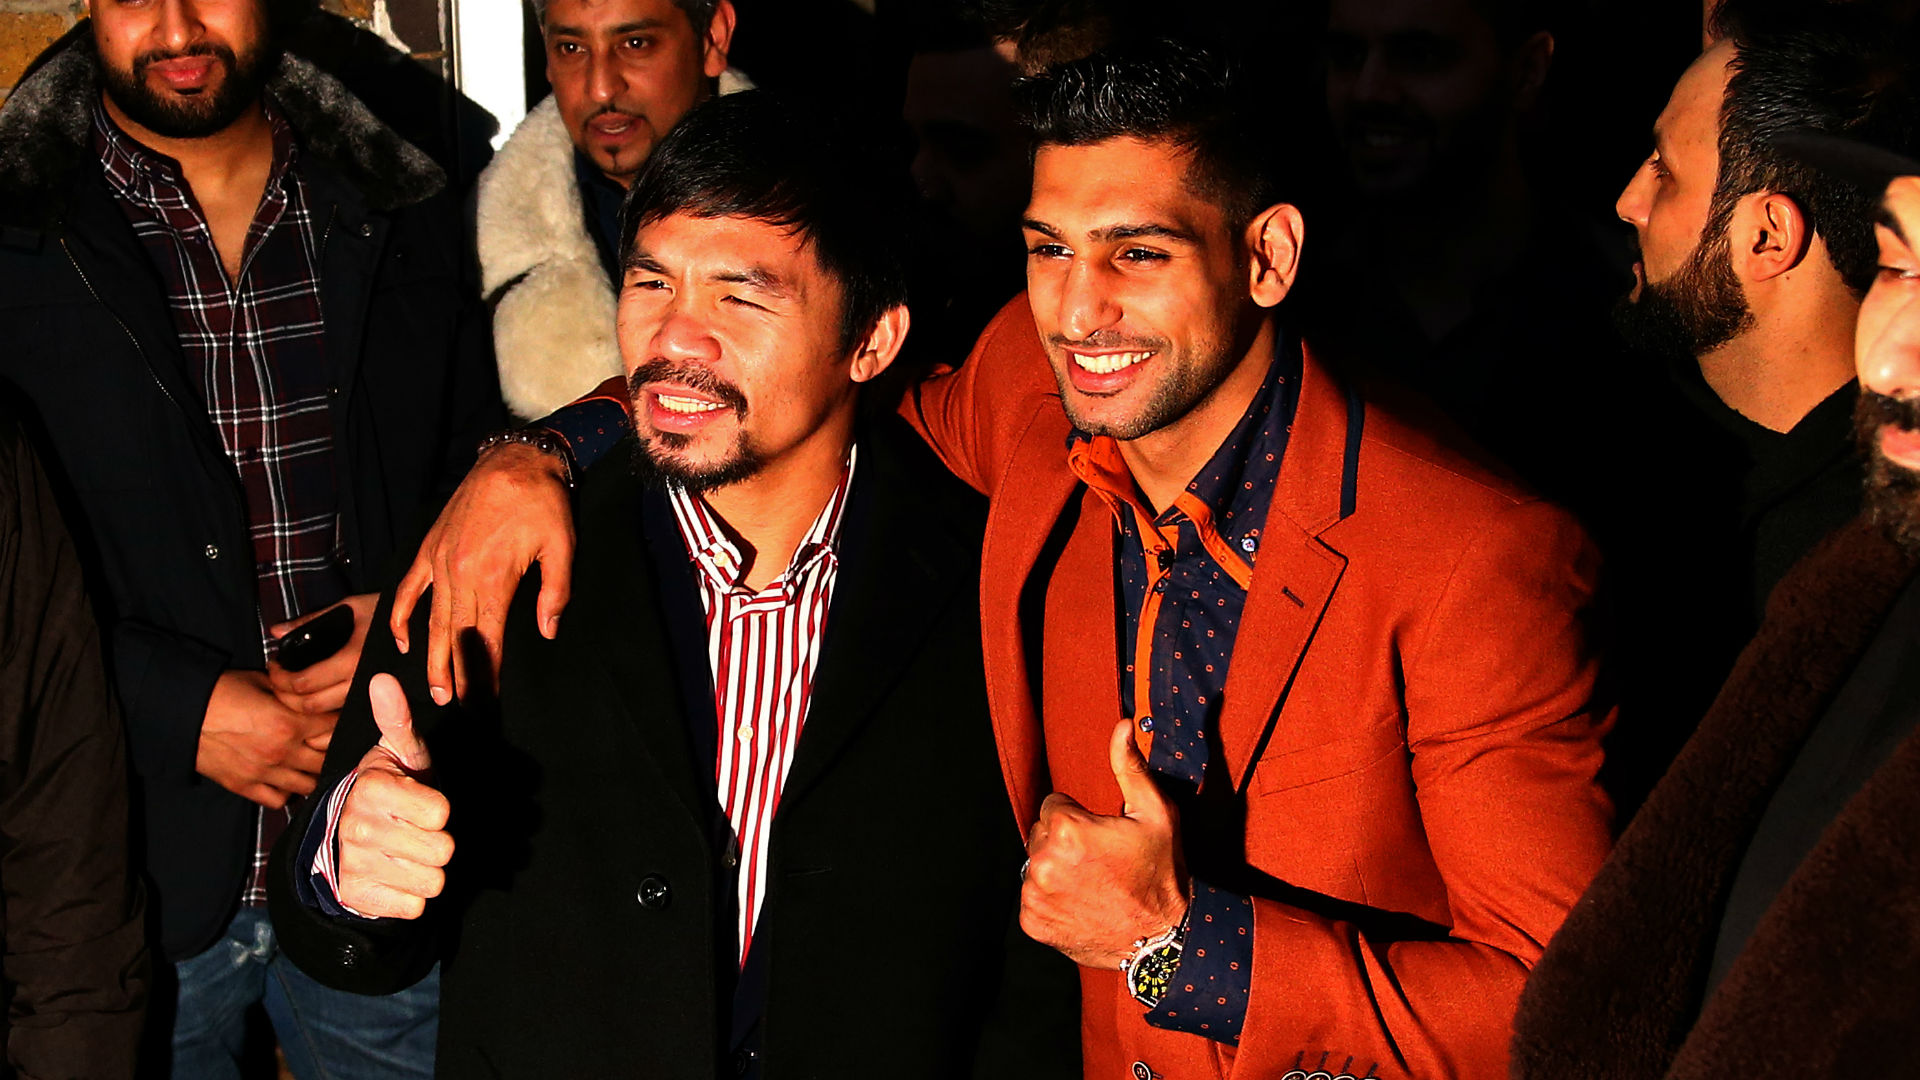 Amir Khan claims Manny Pacquiao agreed to fight in Saudi Arabia